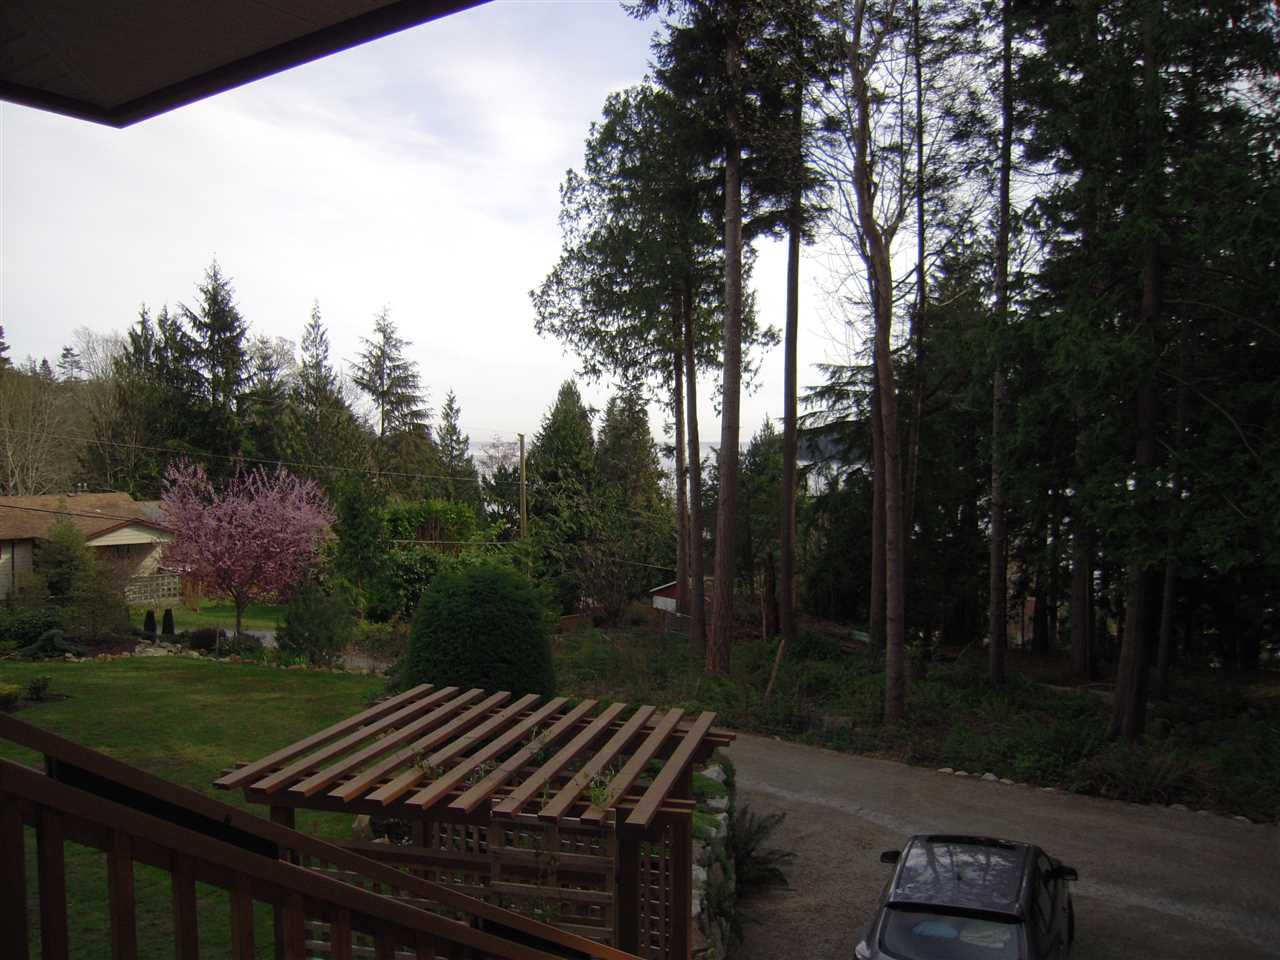 Photo 5: Photos: 5447 WAKEFIELD Road in Sechelt: Sechelt District House for sale (Sunshine Coast)  : MLS®# R2047962